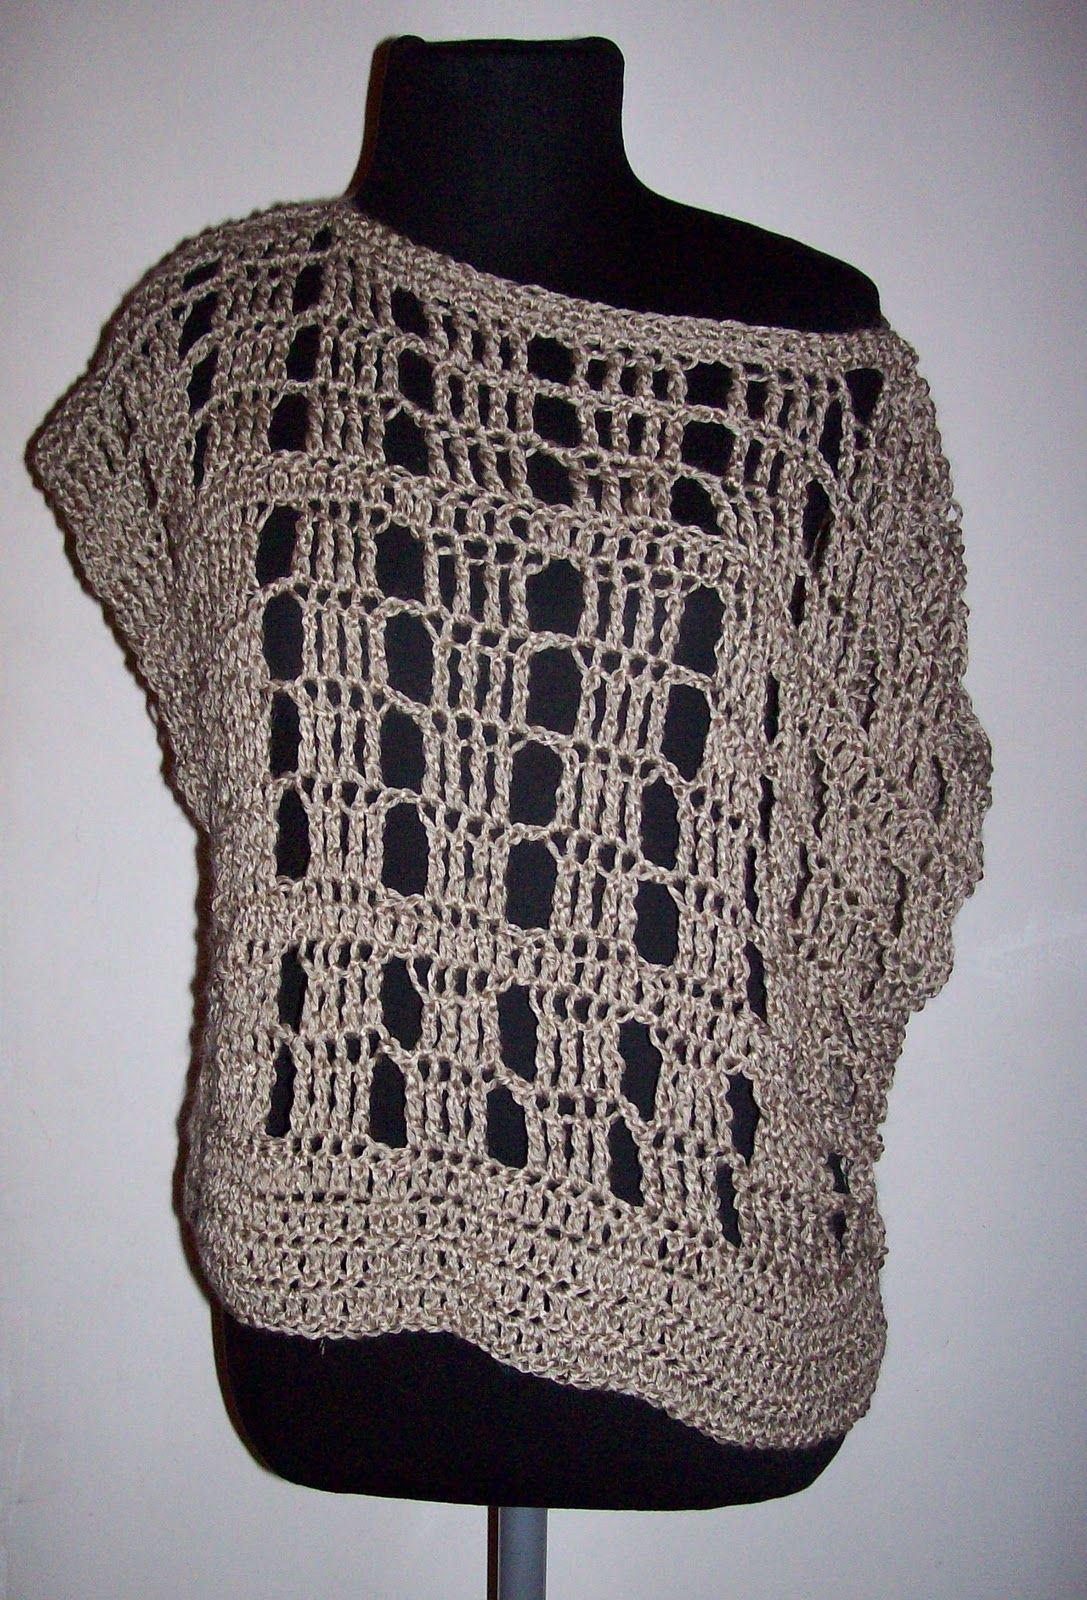 Crochet Chalecos On Pinterest Crochet Vests Drops